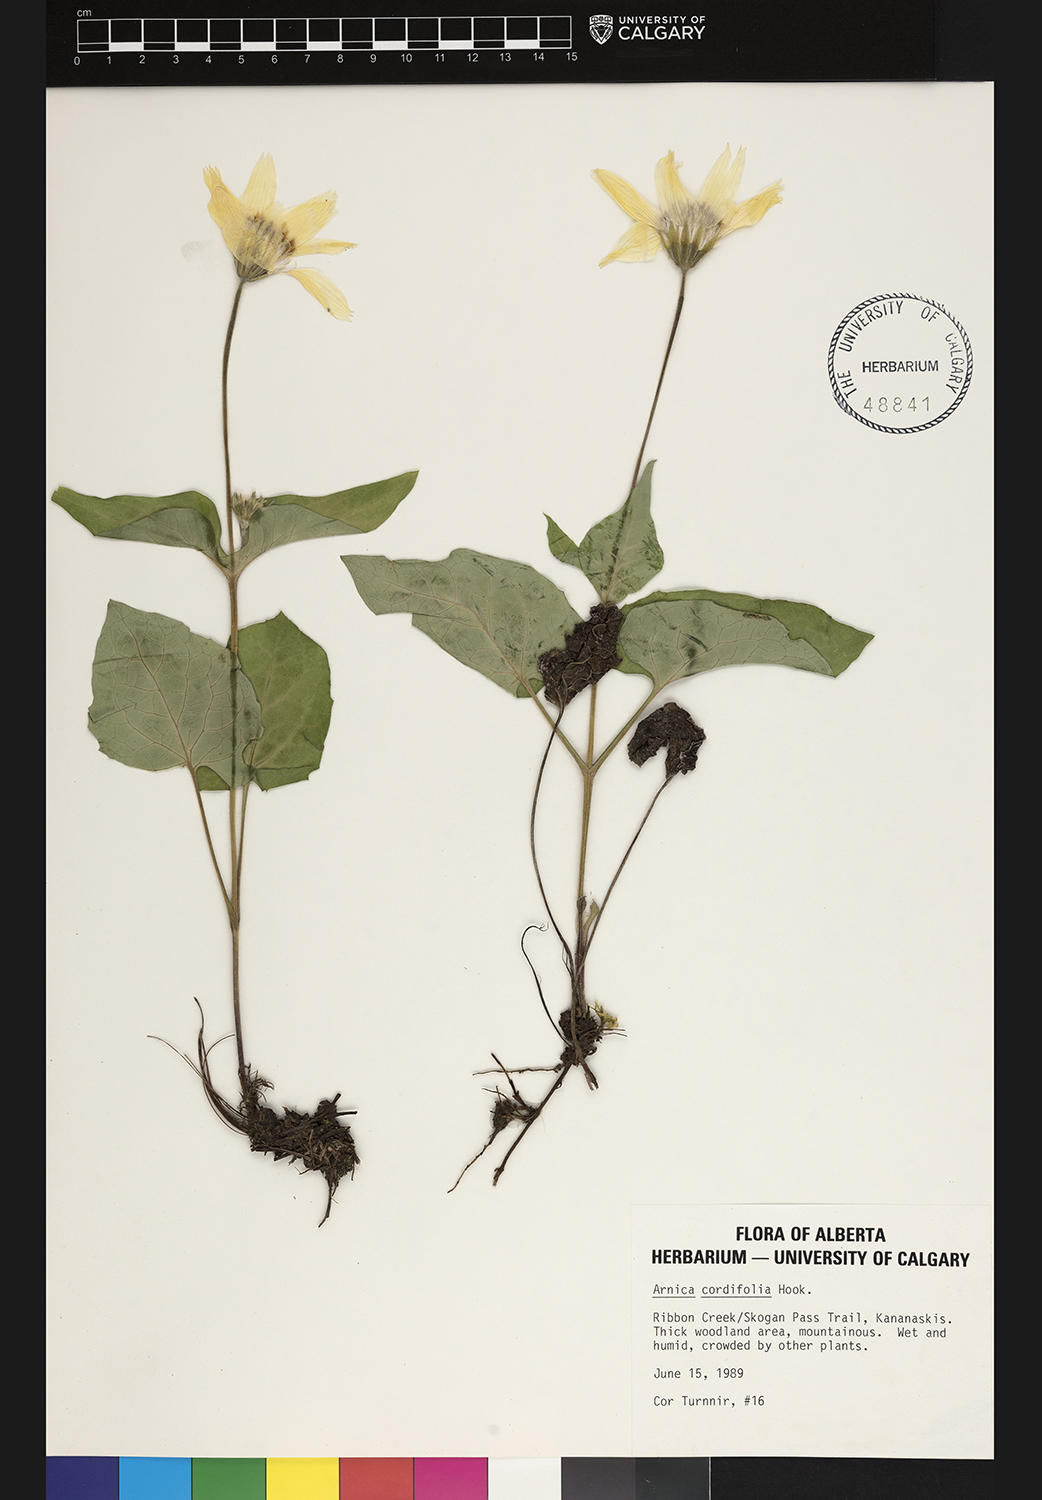 The heart-leaved arnica (Arnica cordifolia 'Hooker') is one of the species represented in the online collection.